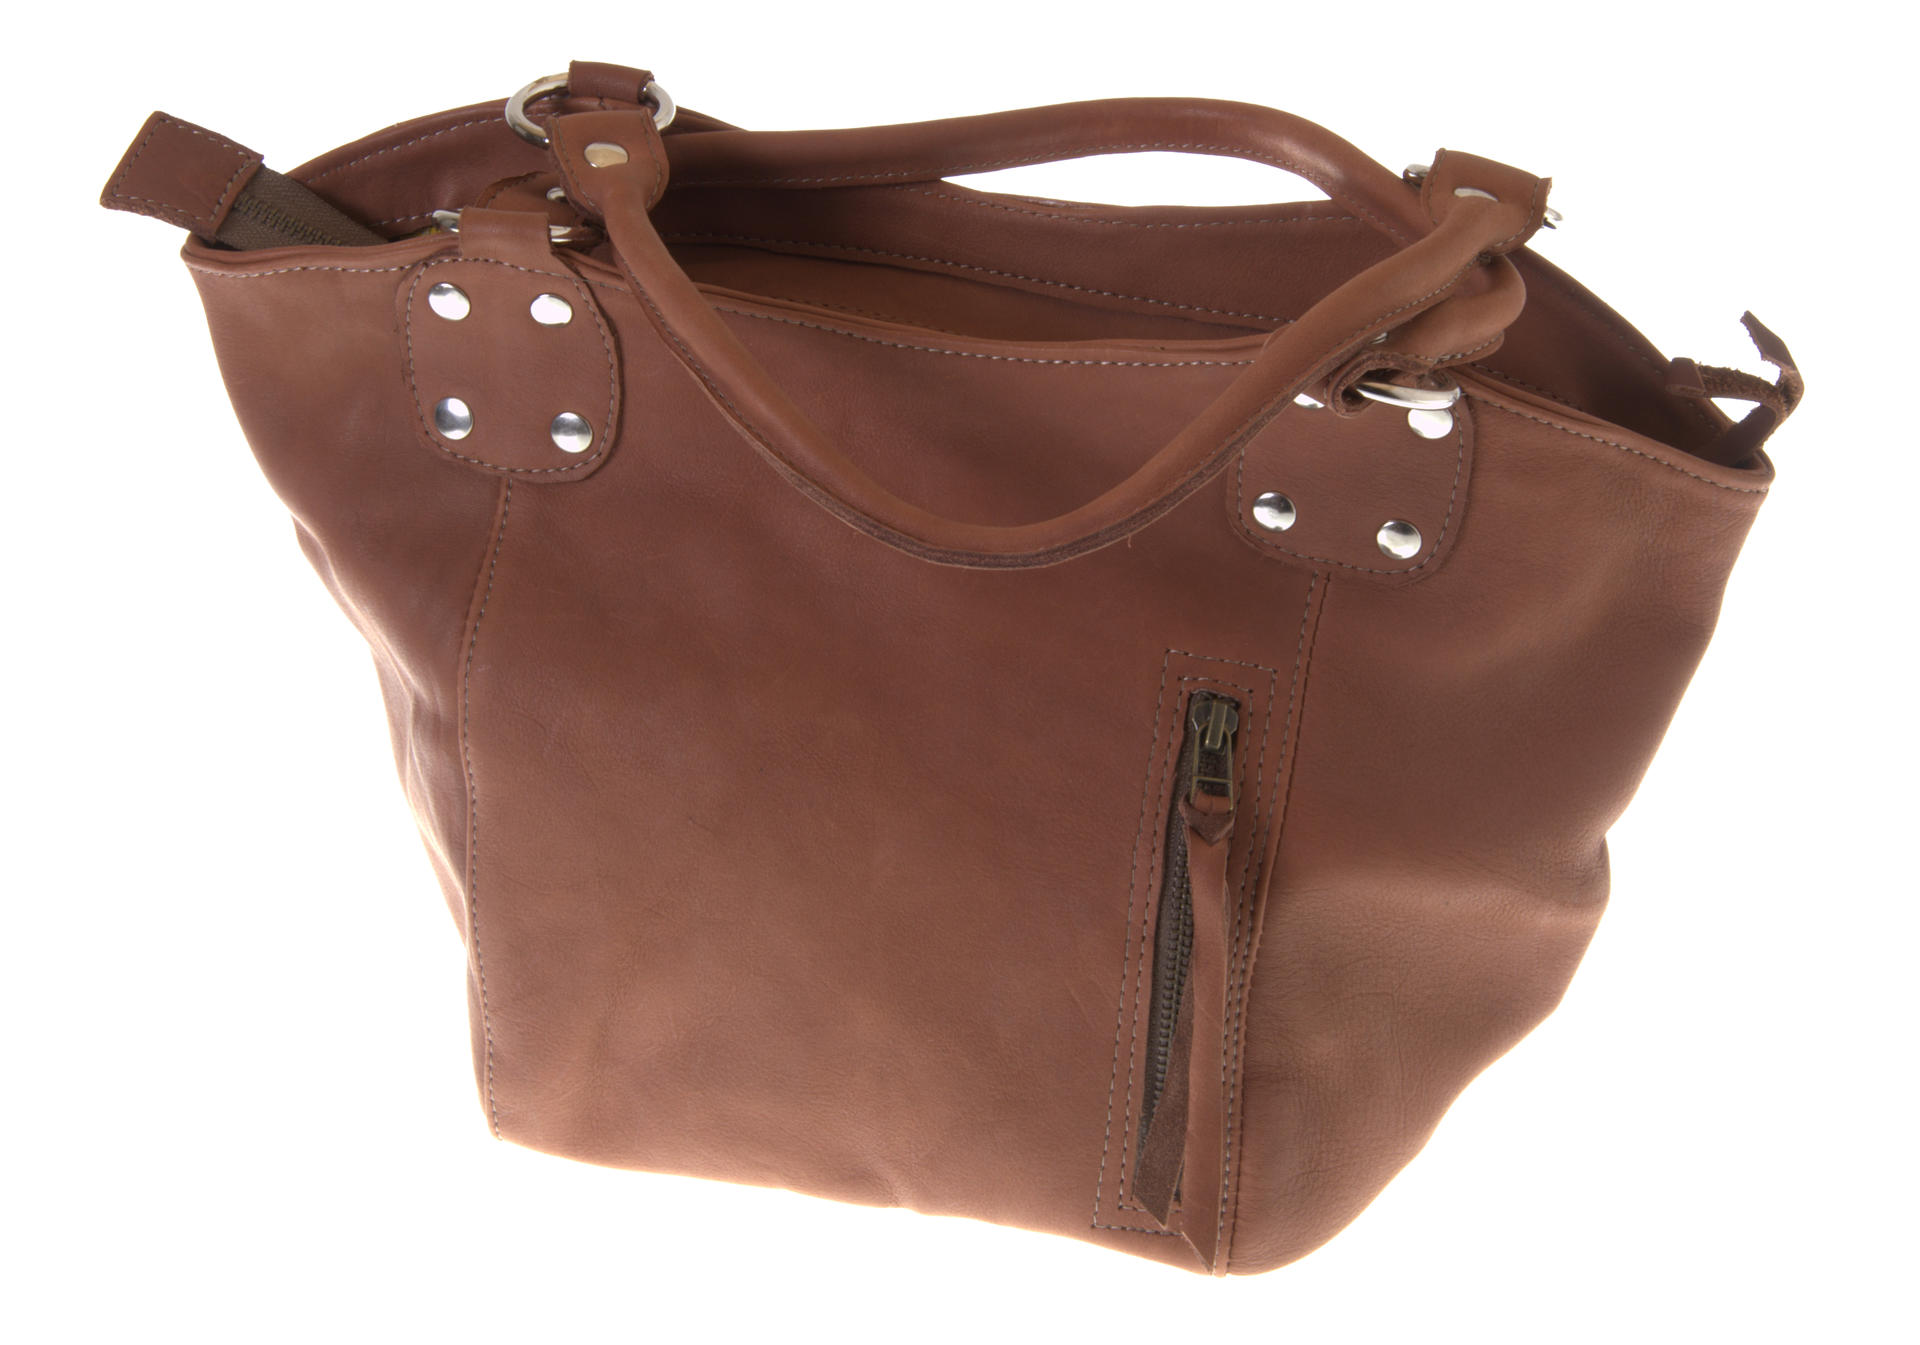 Mini Bucket leather bag by Jackal and Hide